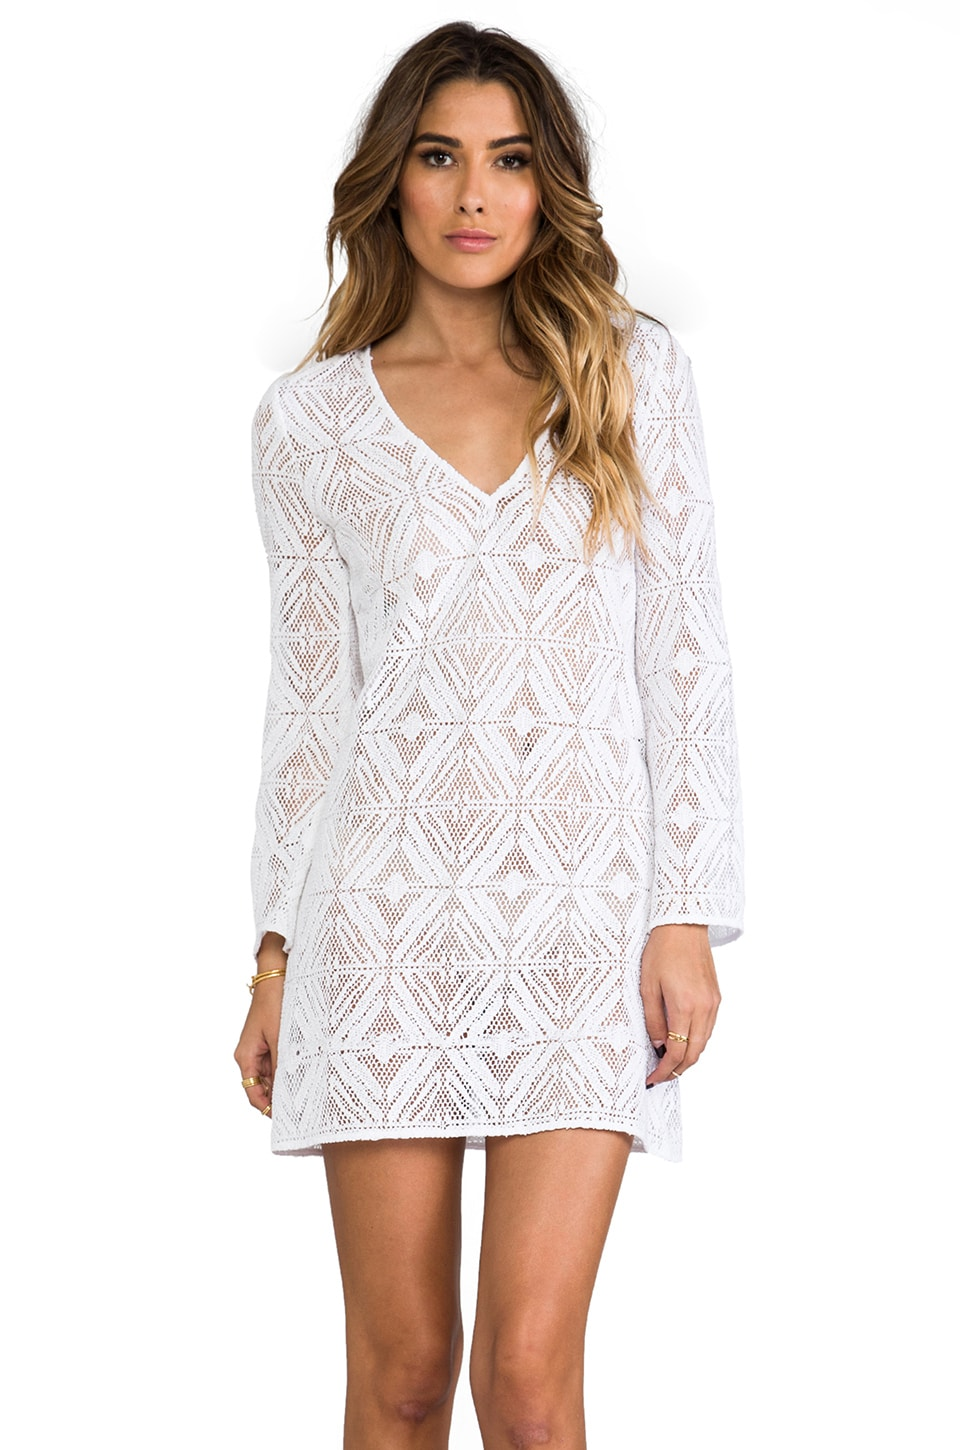 MILLY Mykonos Crochet Tunic in White